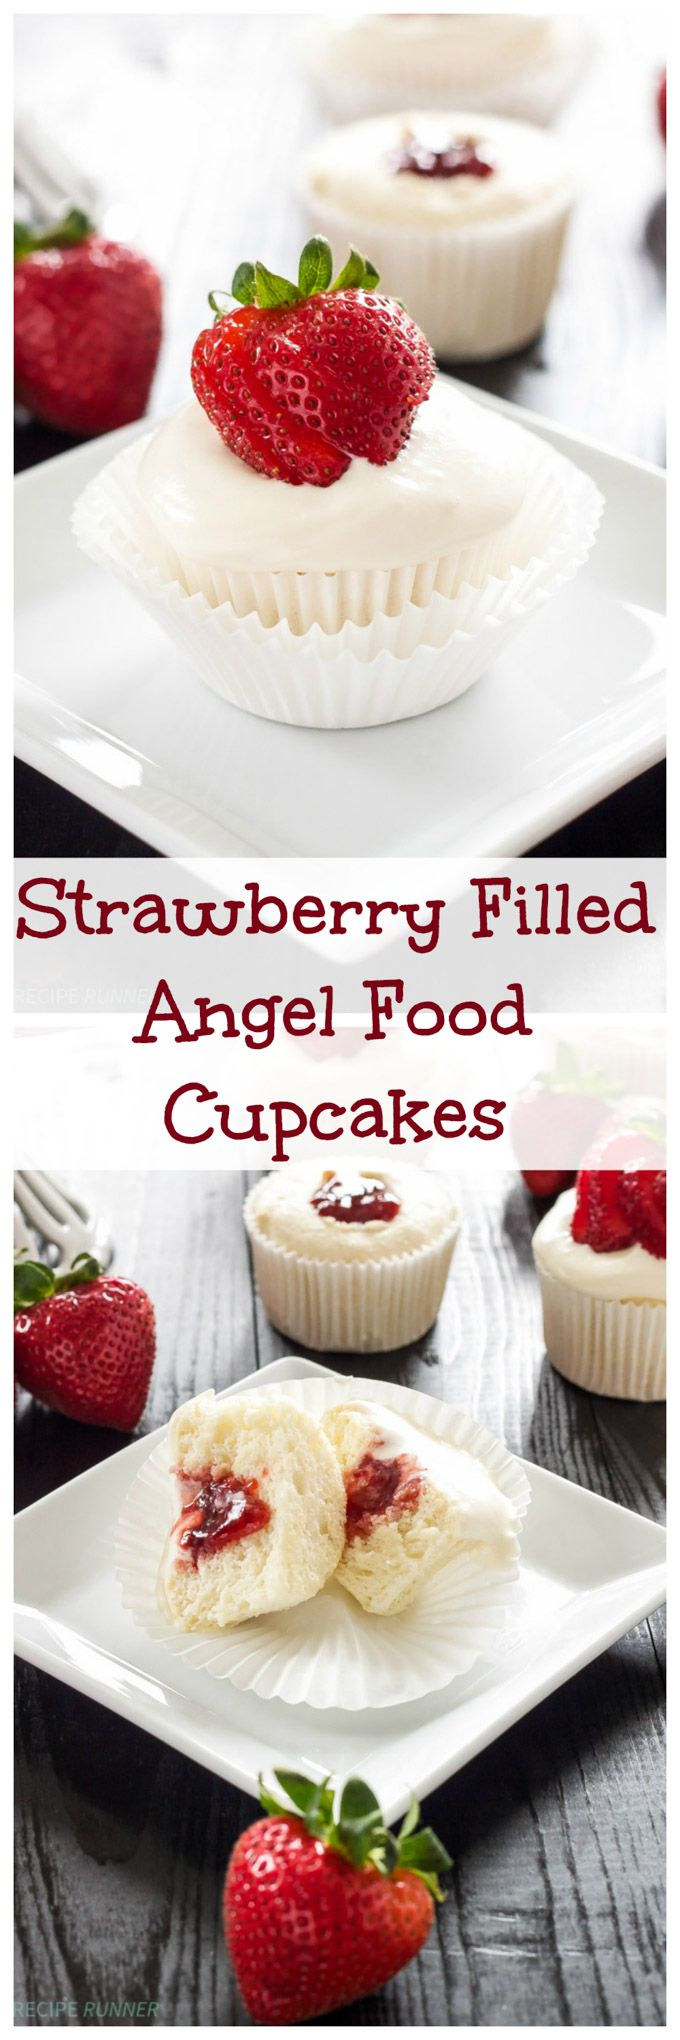 Strawberry Filled Angel Food Cupcakes | Angel food cupcake filled with strawberry jam, topped with whipped cream frosting & a strawberry!